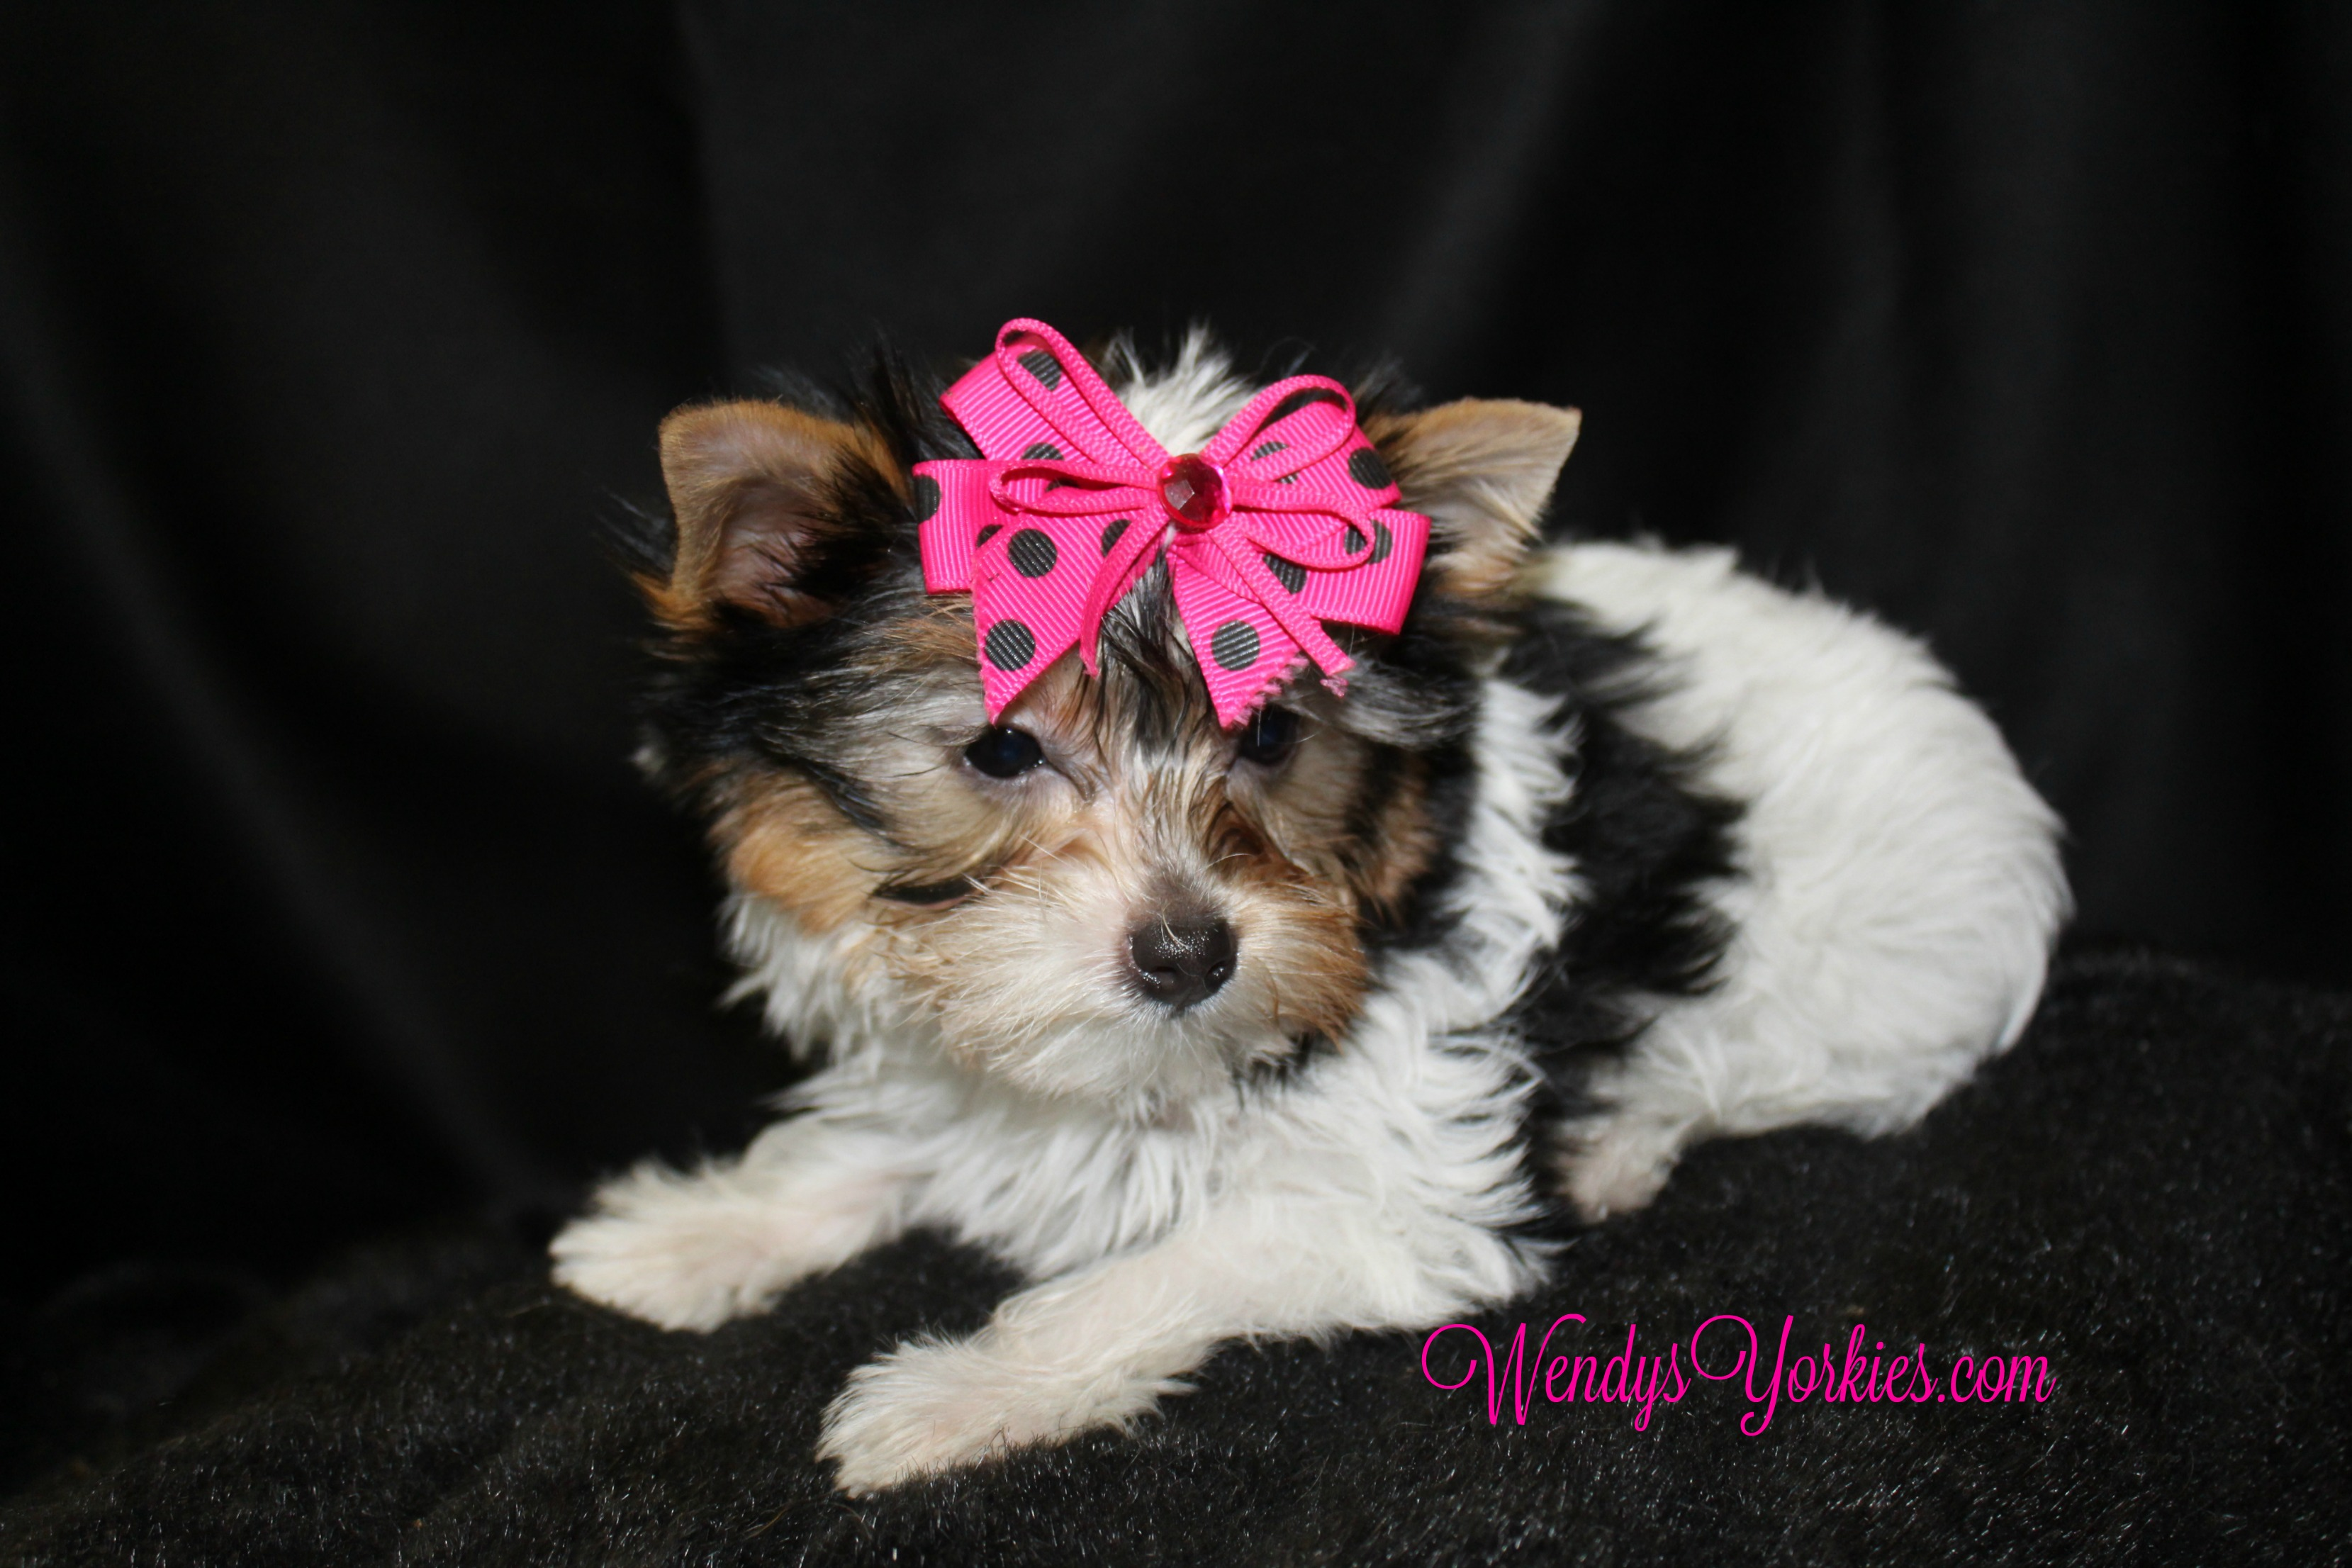 Tiny Teacup Parti Yorkie puppies for sale, WendysYorkies.com, Daisy pf1